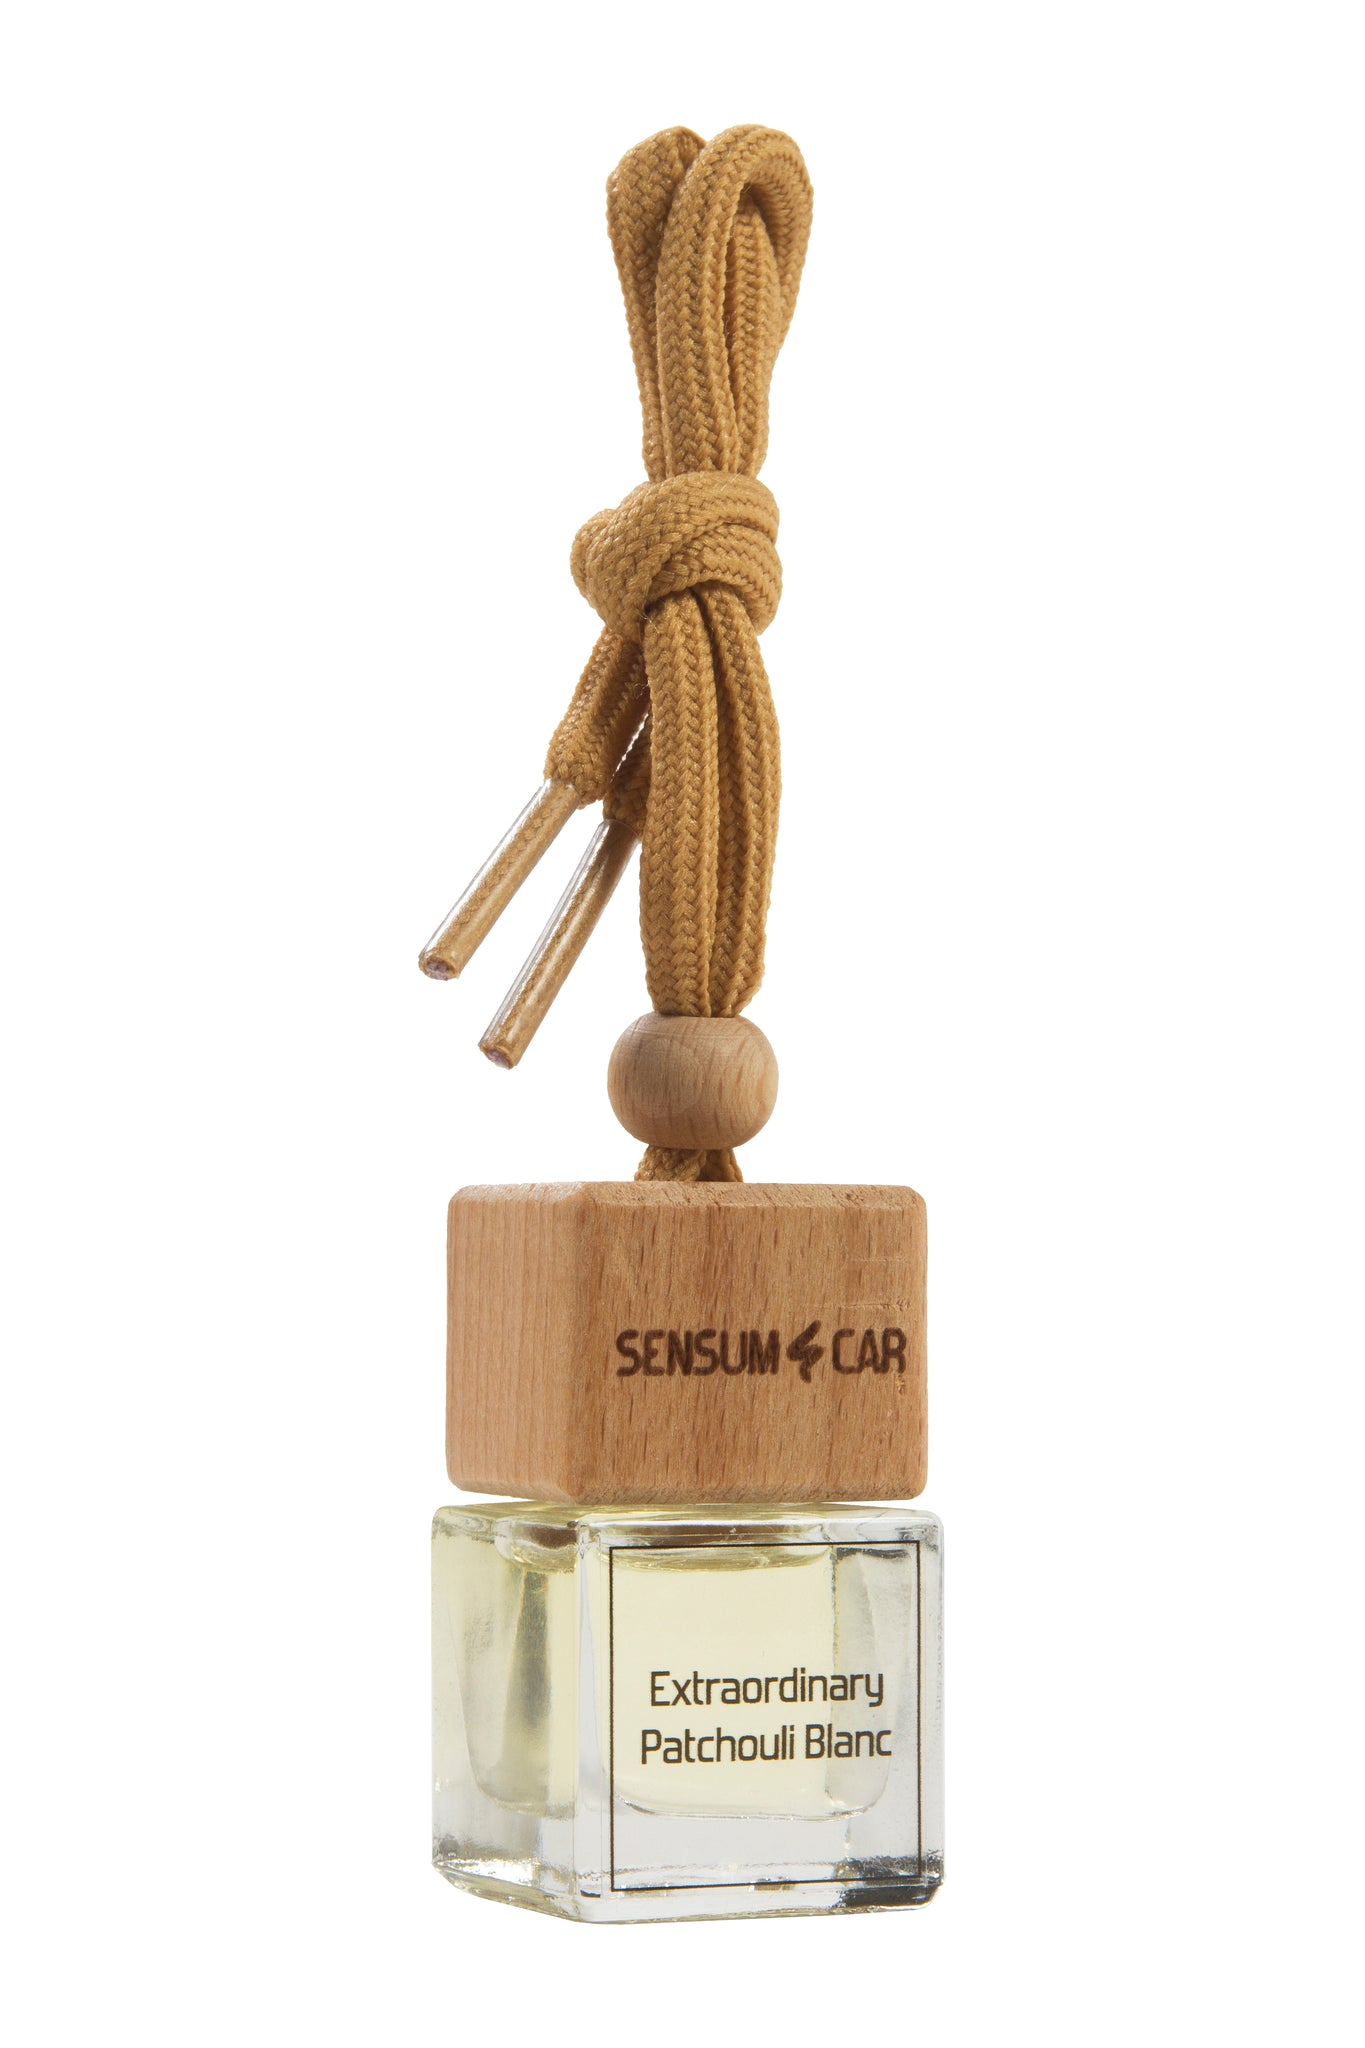 SENSUM CAR Luxury Perfume with hanging bottle - EXTRAORDINARY PATCHOULI BLANC